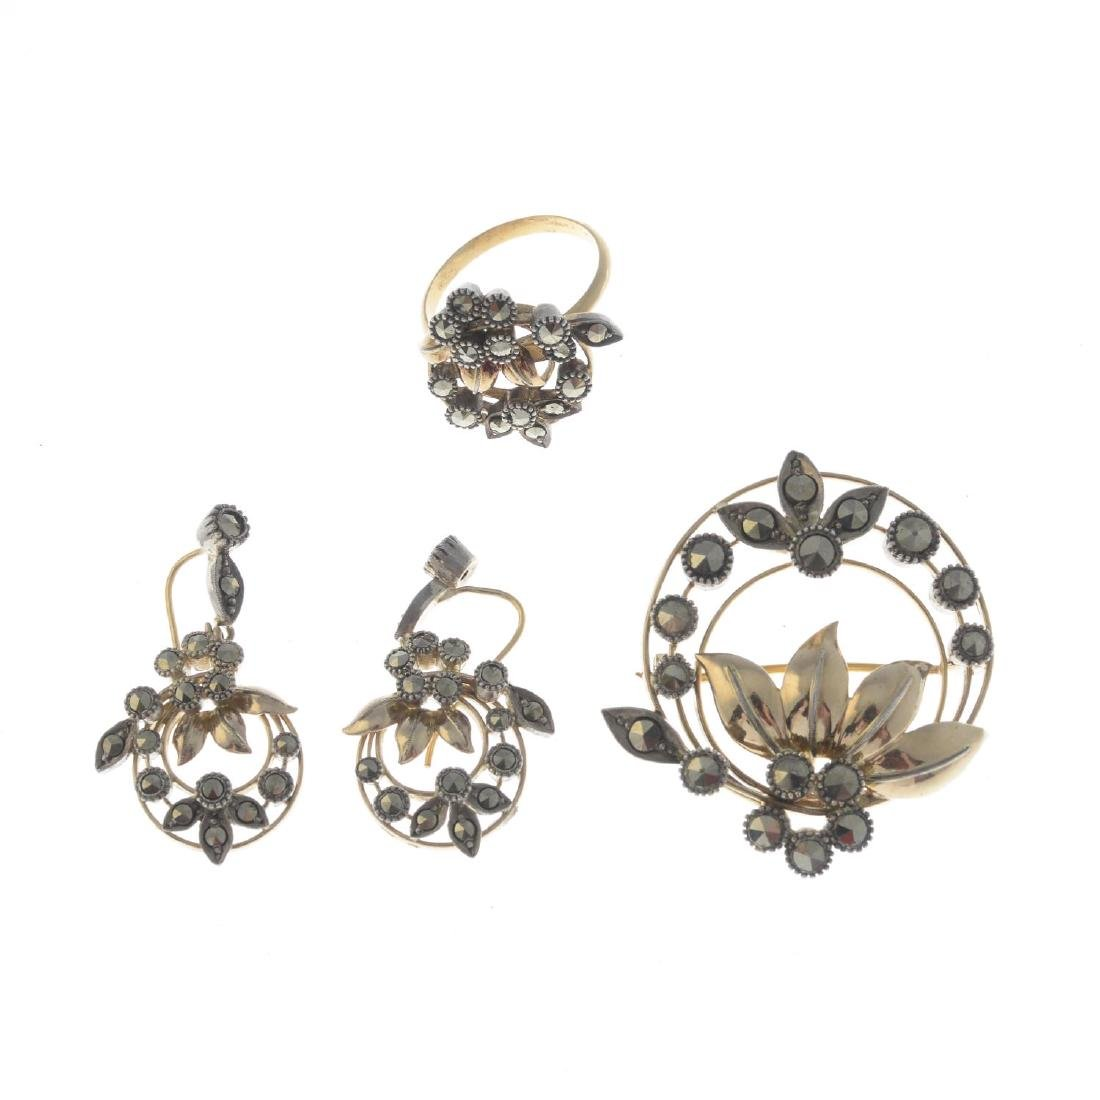 An mid 20th century gold and silver marcasite jewellery - 2